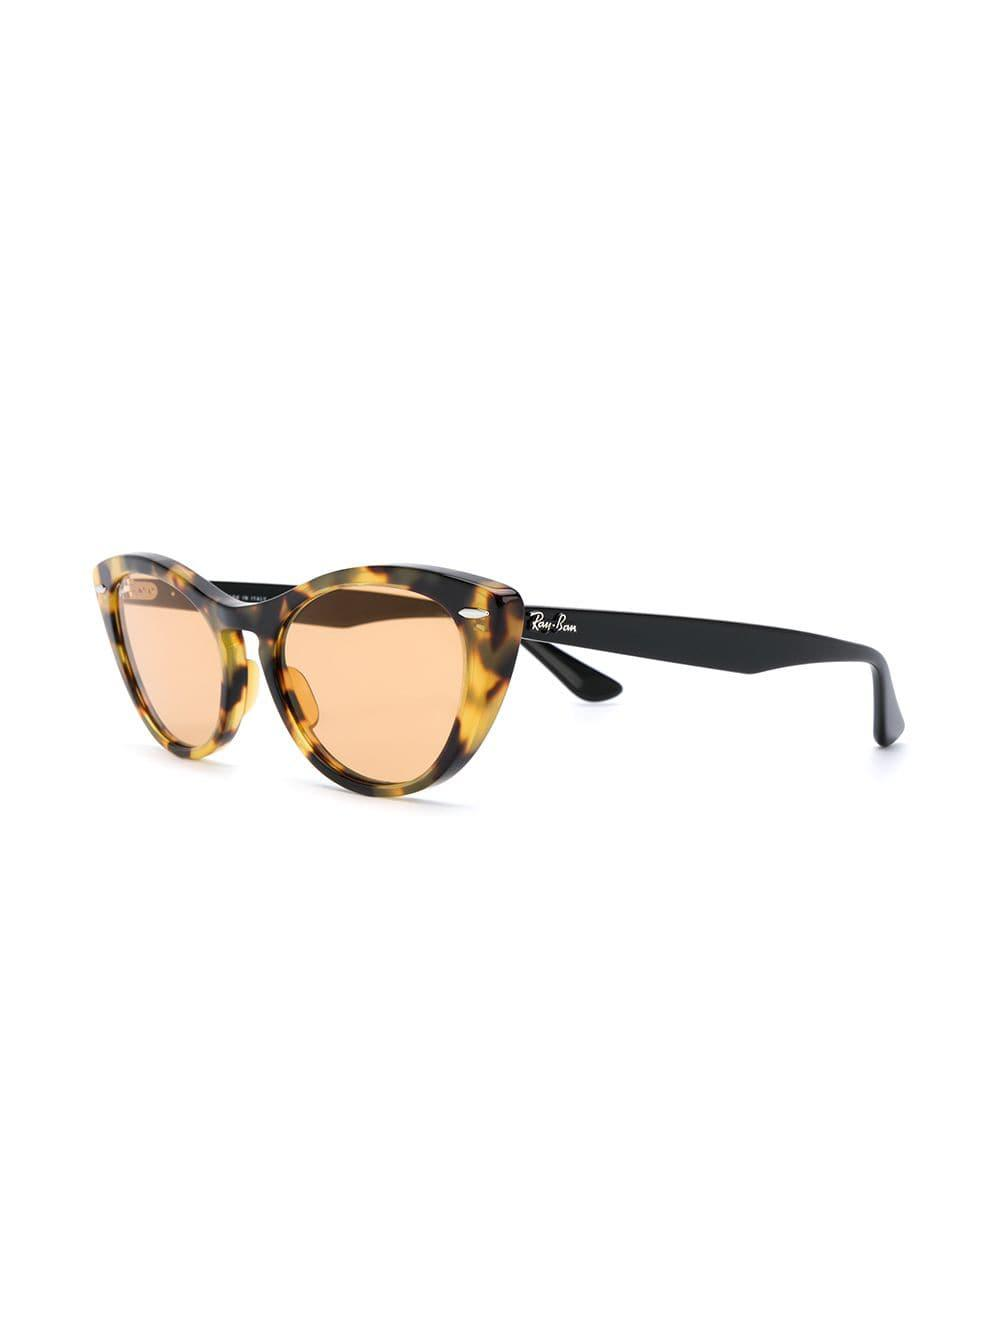 1f35c108722 Ray-Ban Cat Eye Sunglasses in Brown - Lyst